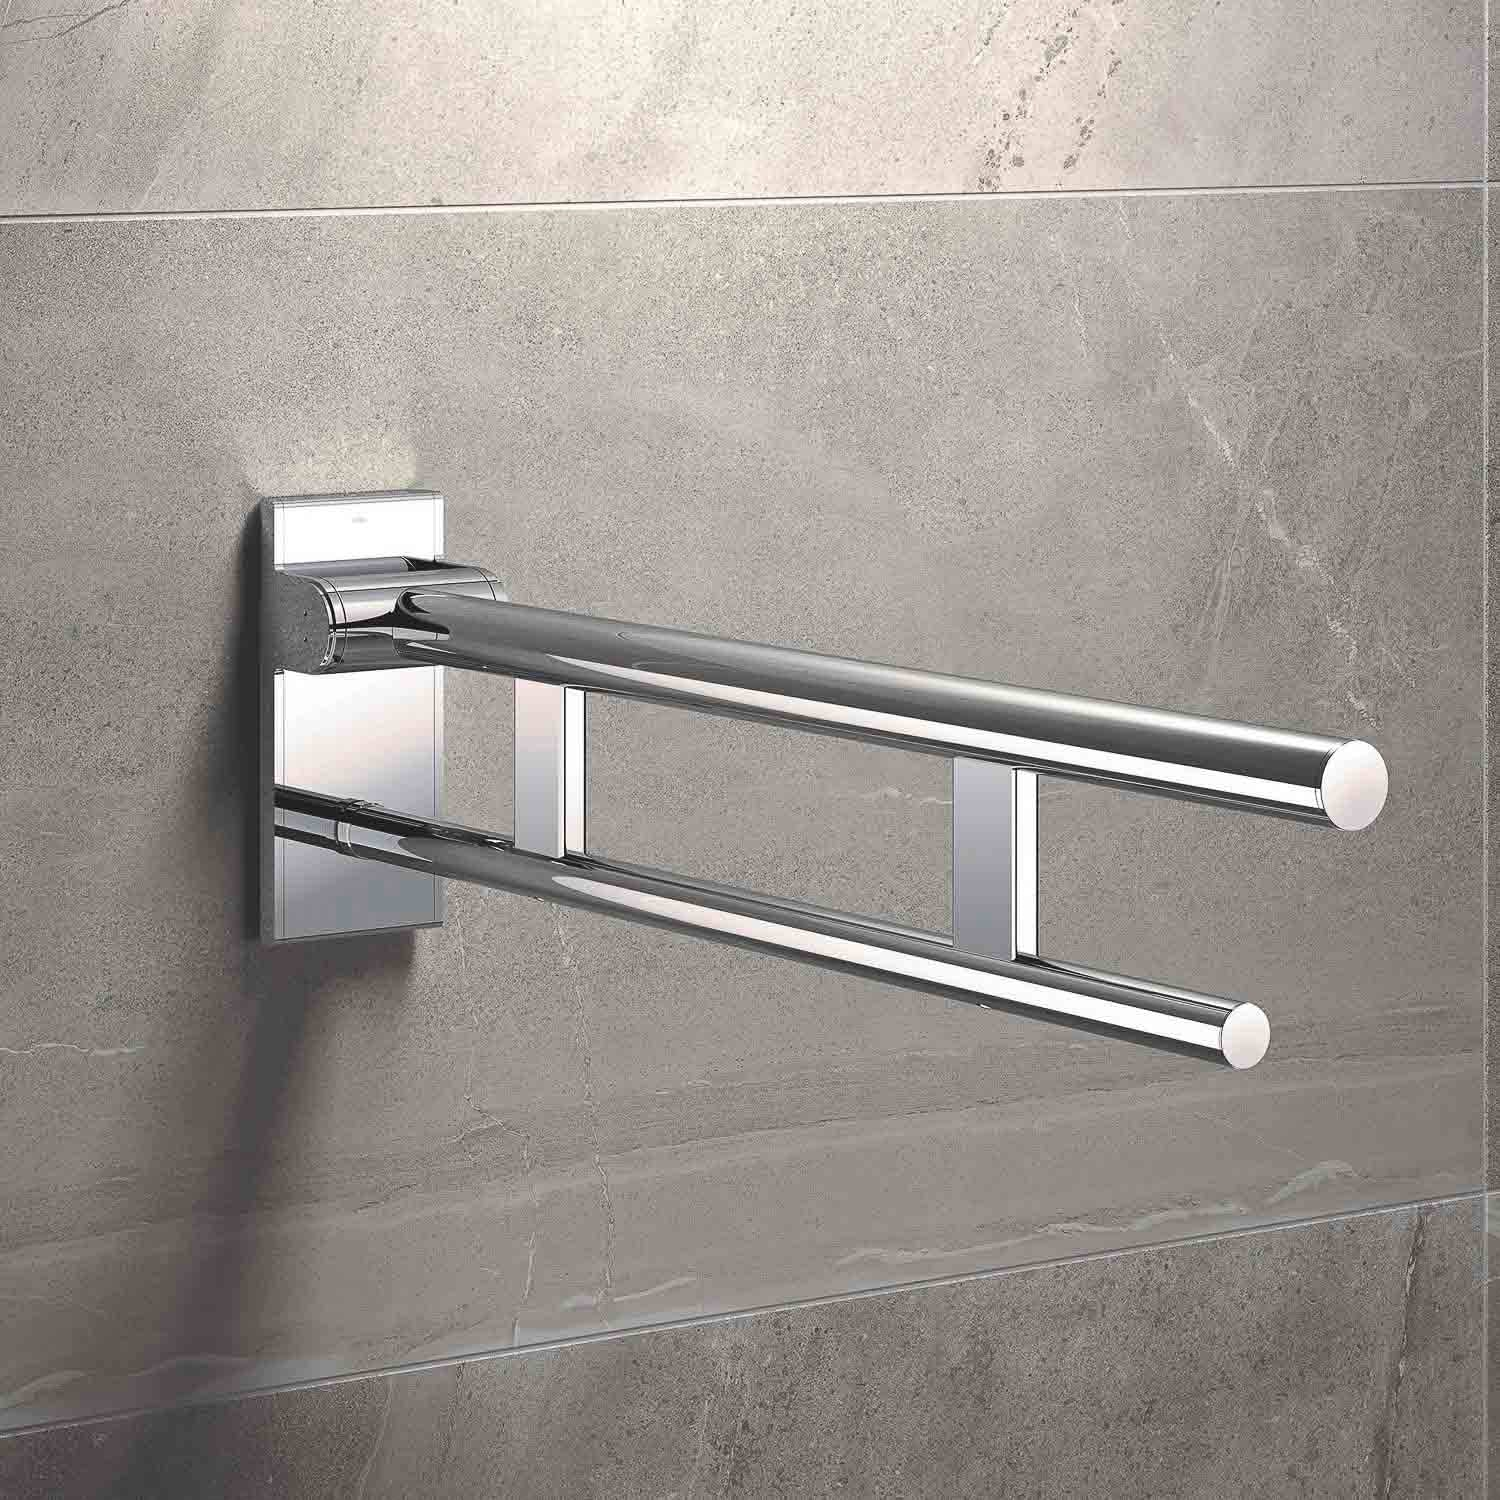 700mm Freestyle Hinged Grab Rail with a chrome finish lifestyle image